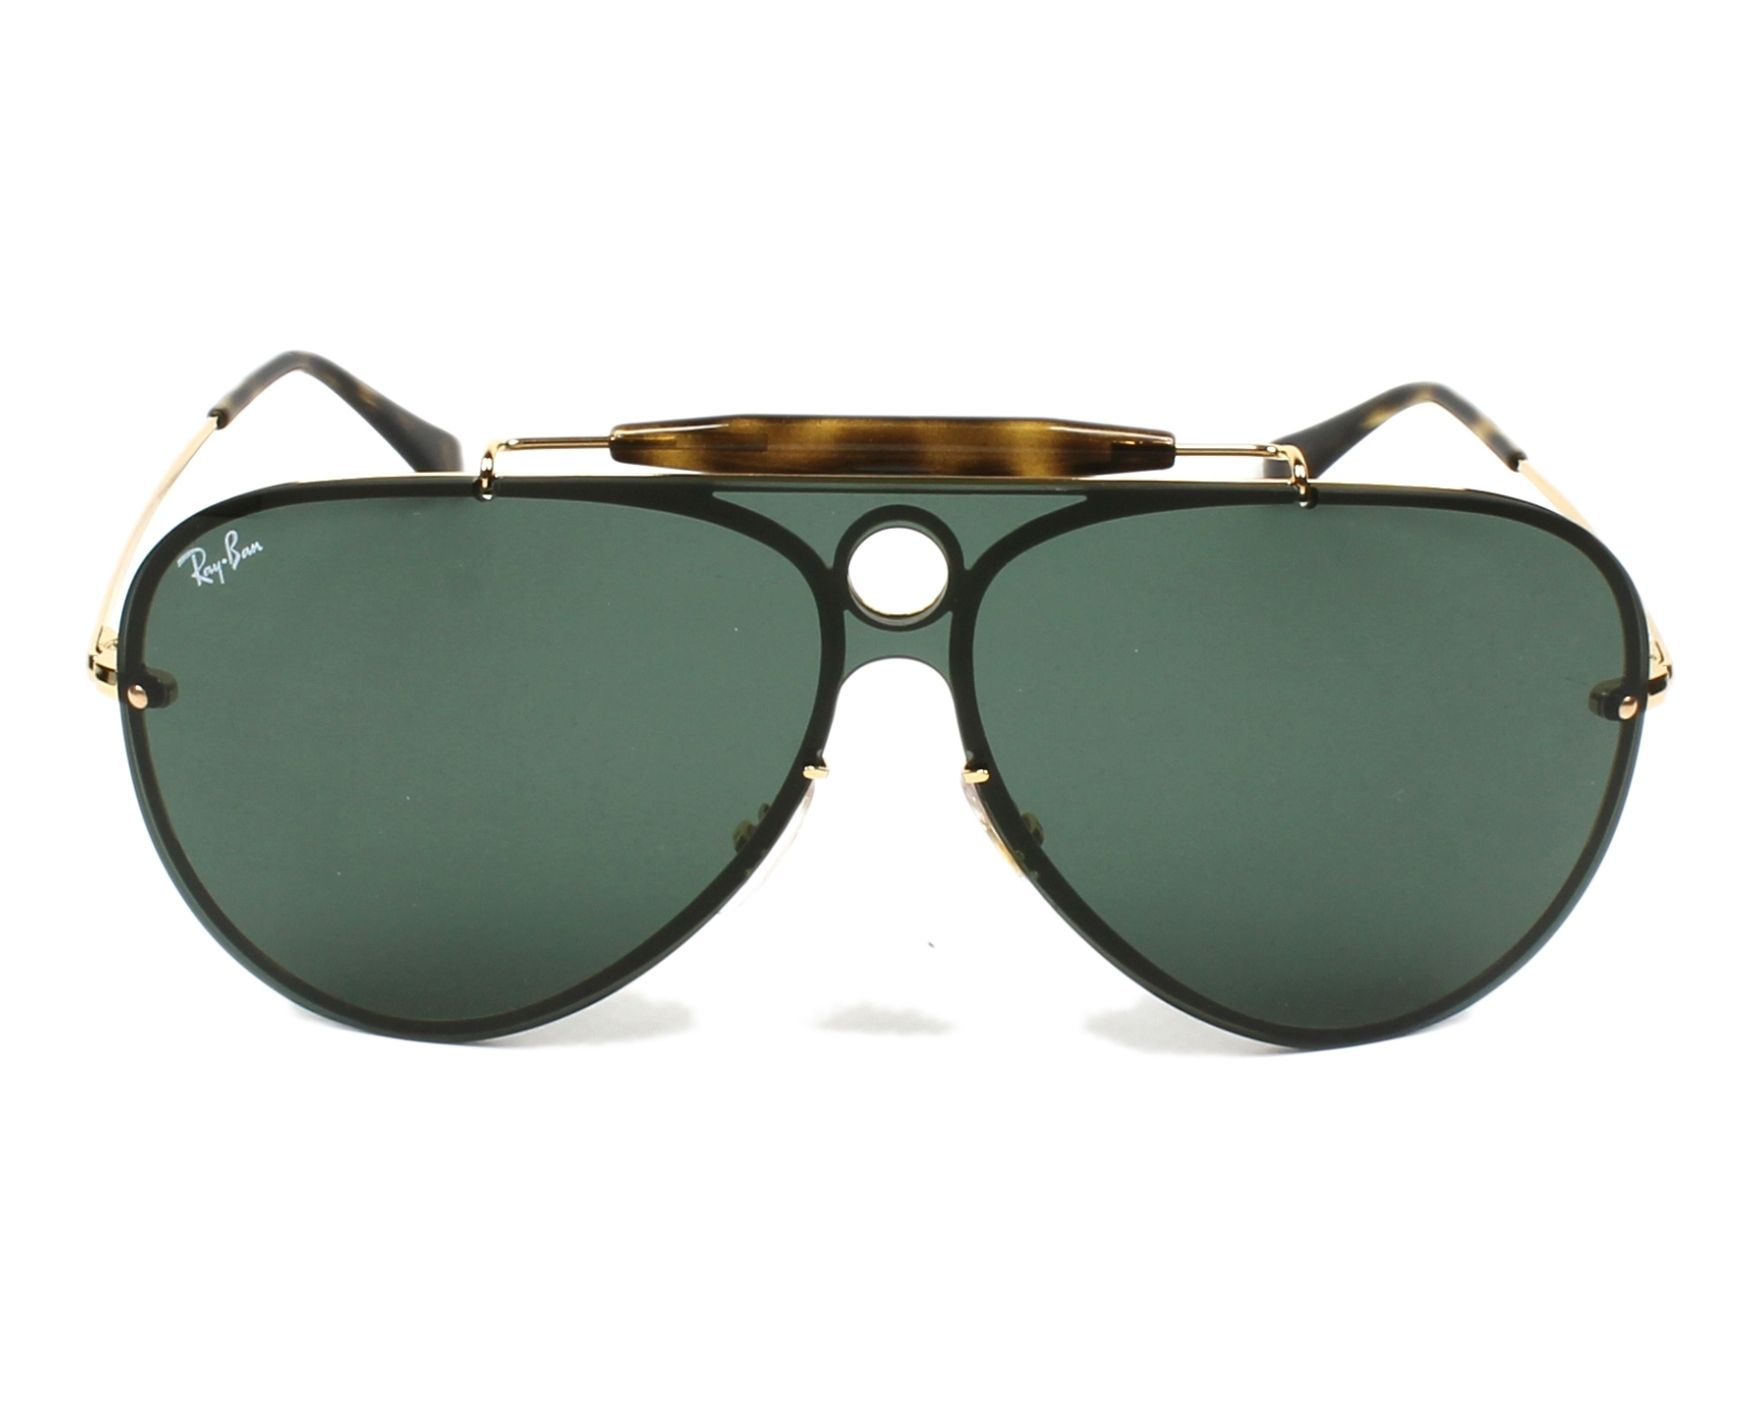 460f94ec42387 Ray Ban Blaze Shooter Price In India   David Simchi-Levi